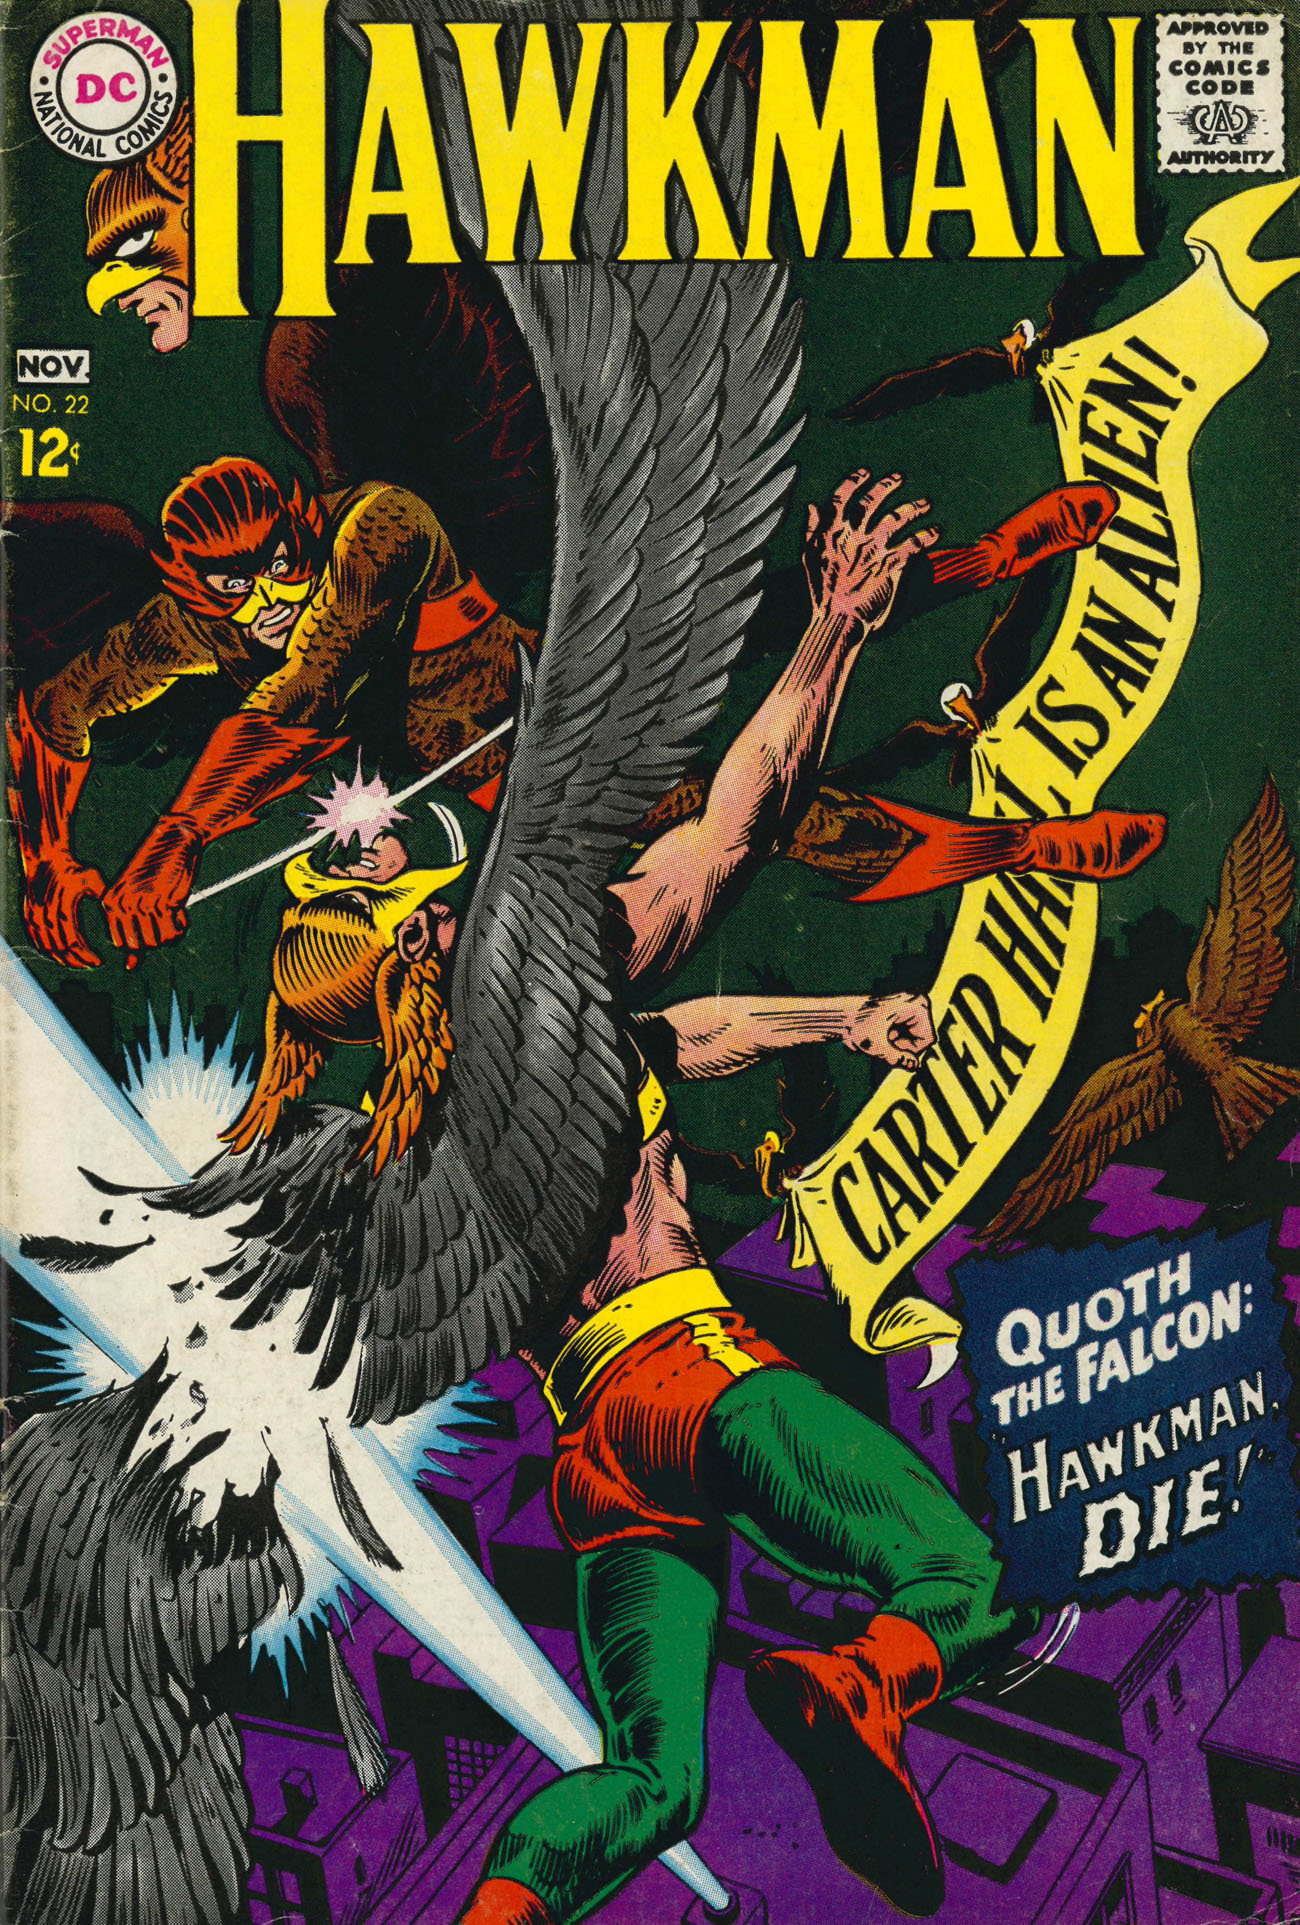 Hawkman (1964) issue 22 - Page 1